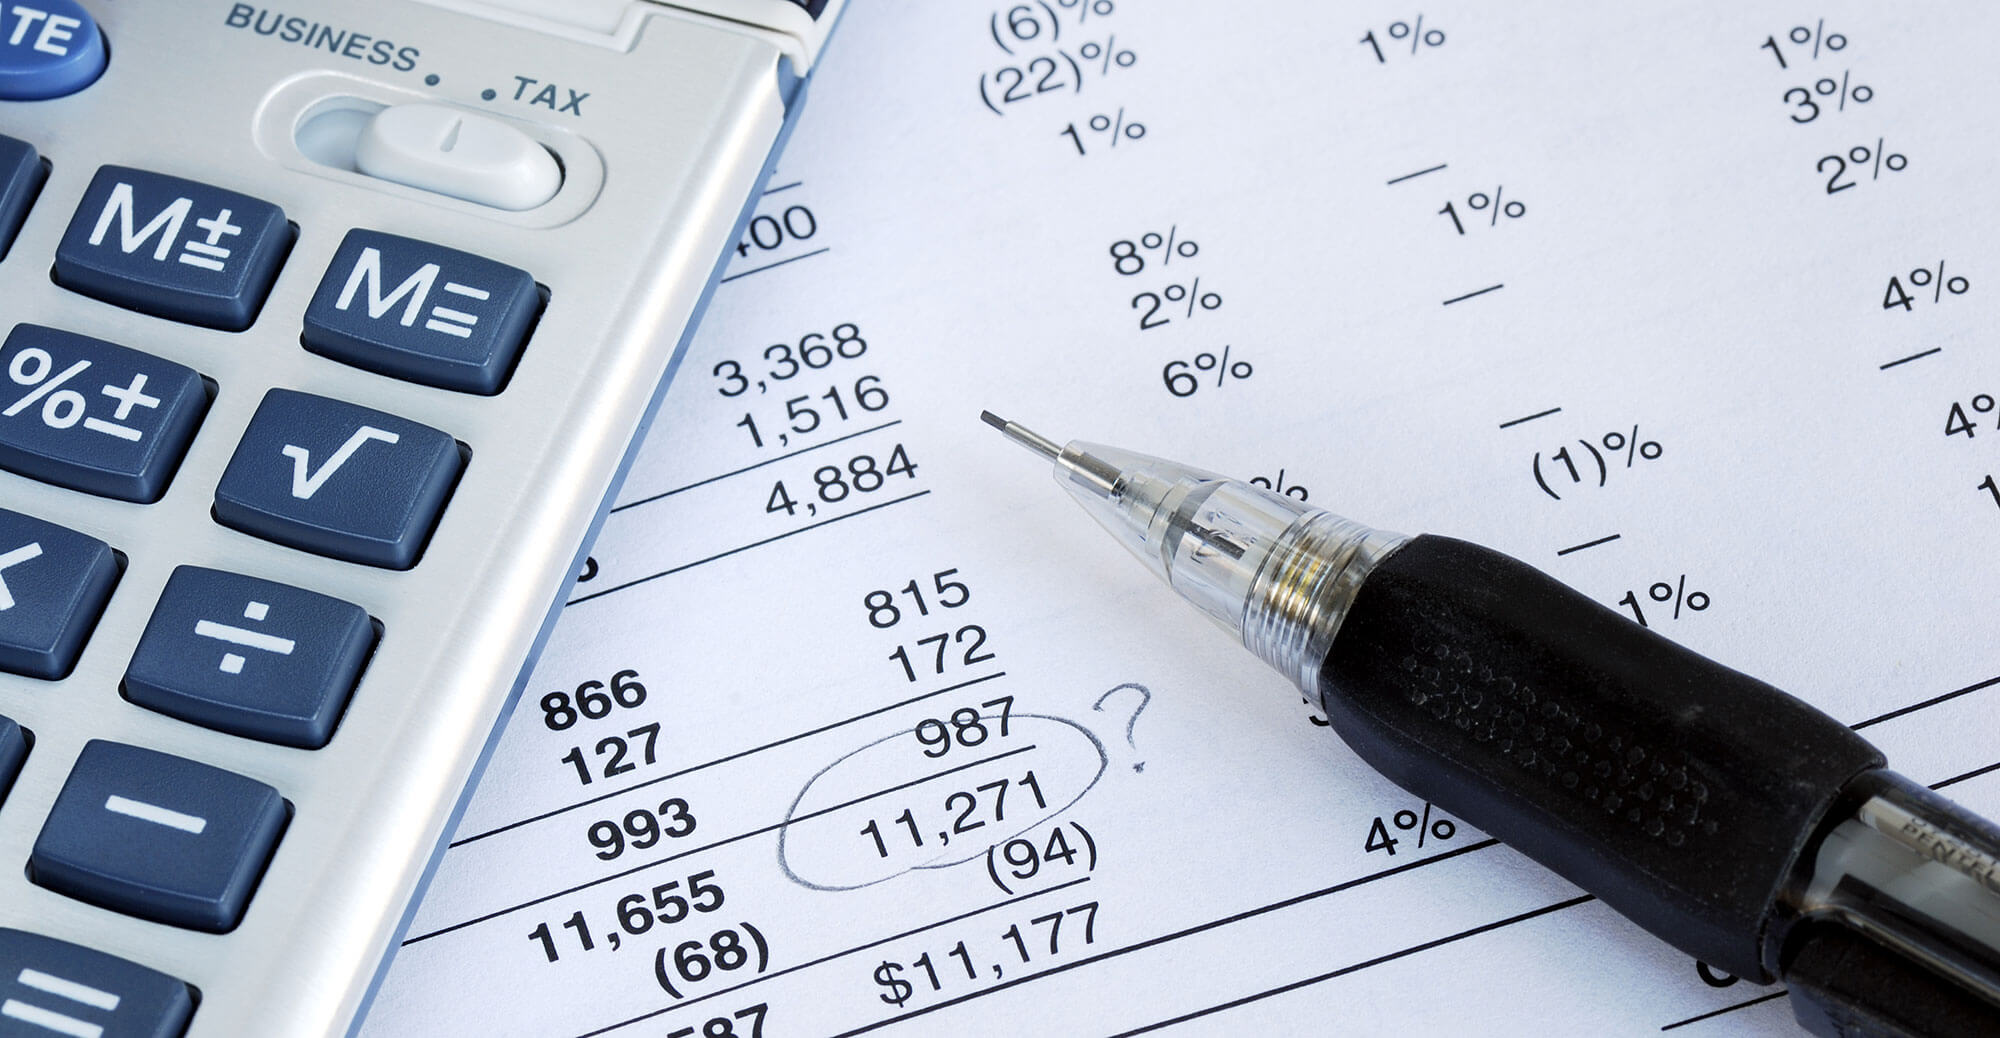 How to Prepare for Your Financial Statement Audit